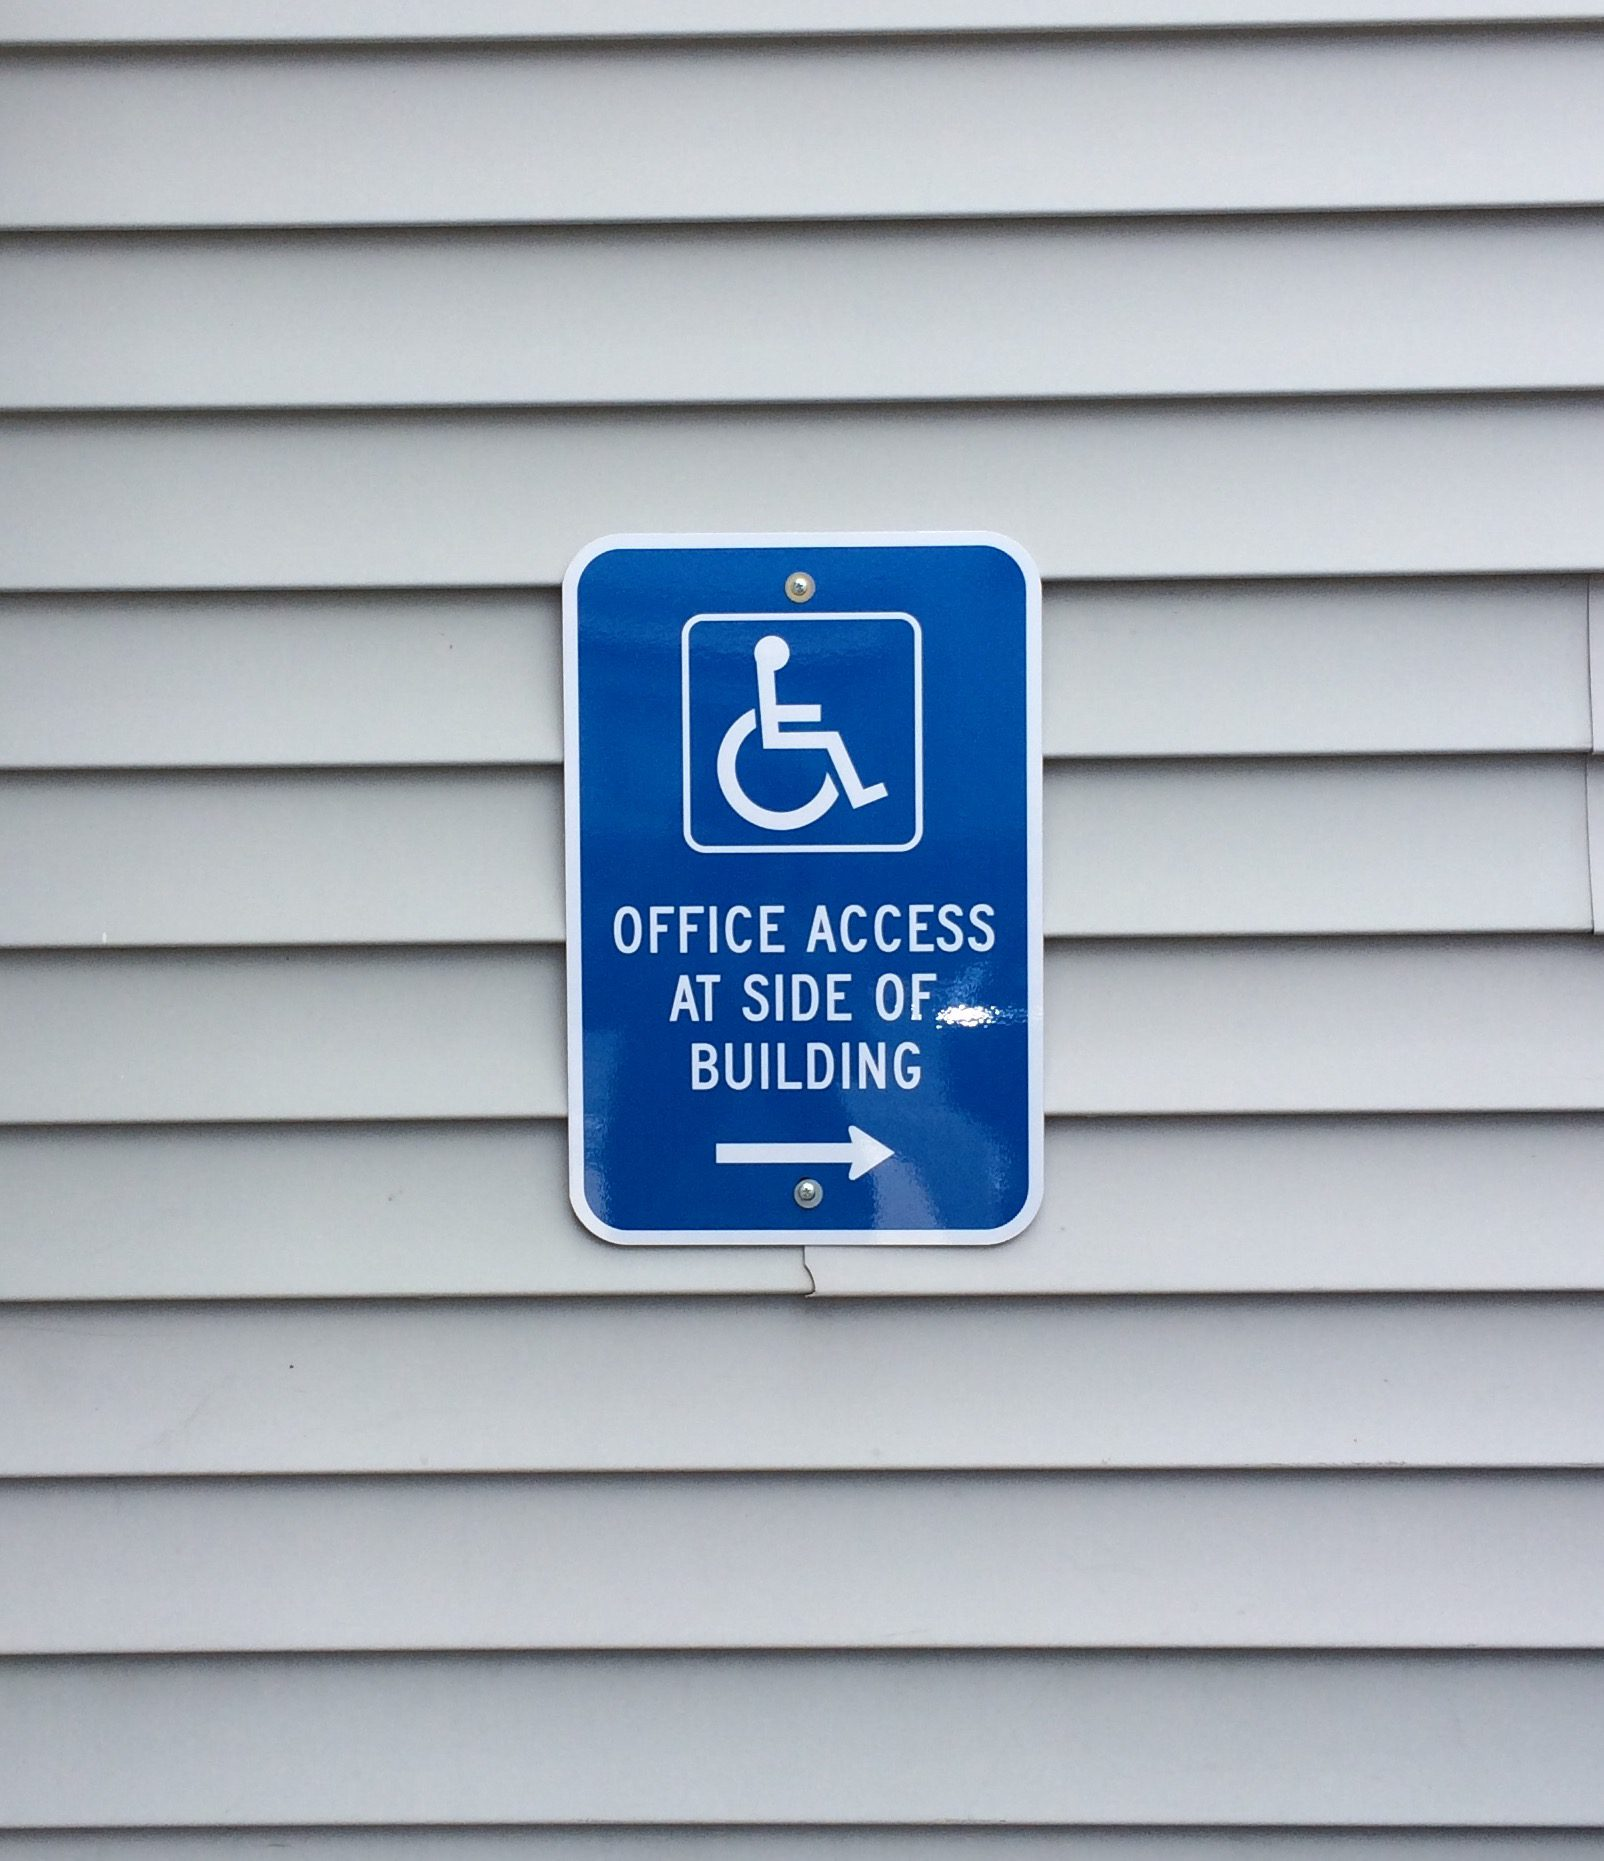 Directornal Signage to accessible netrance.